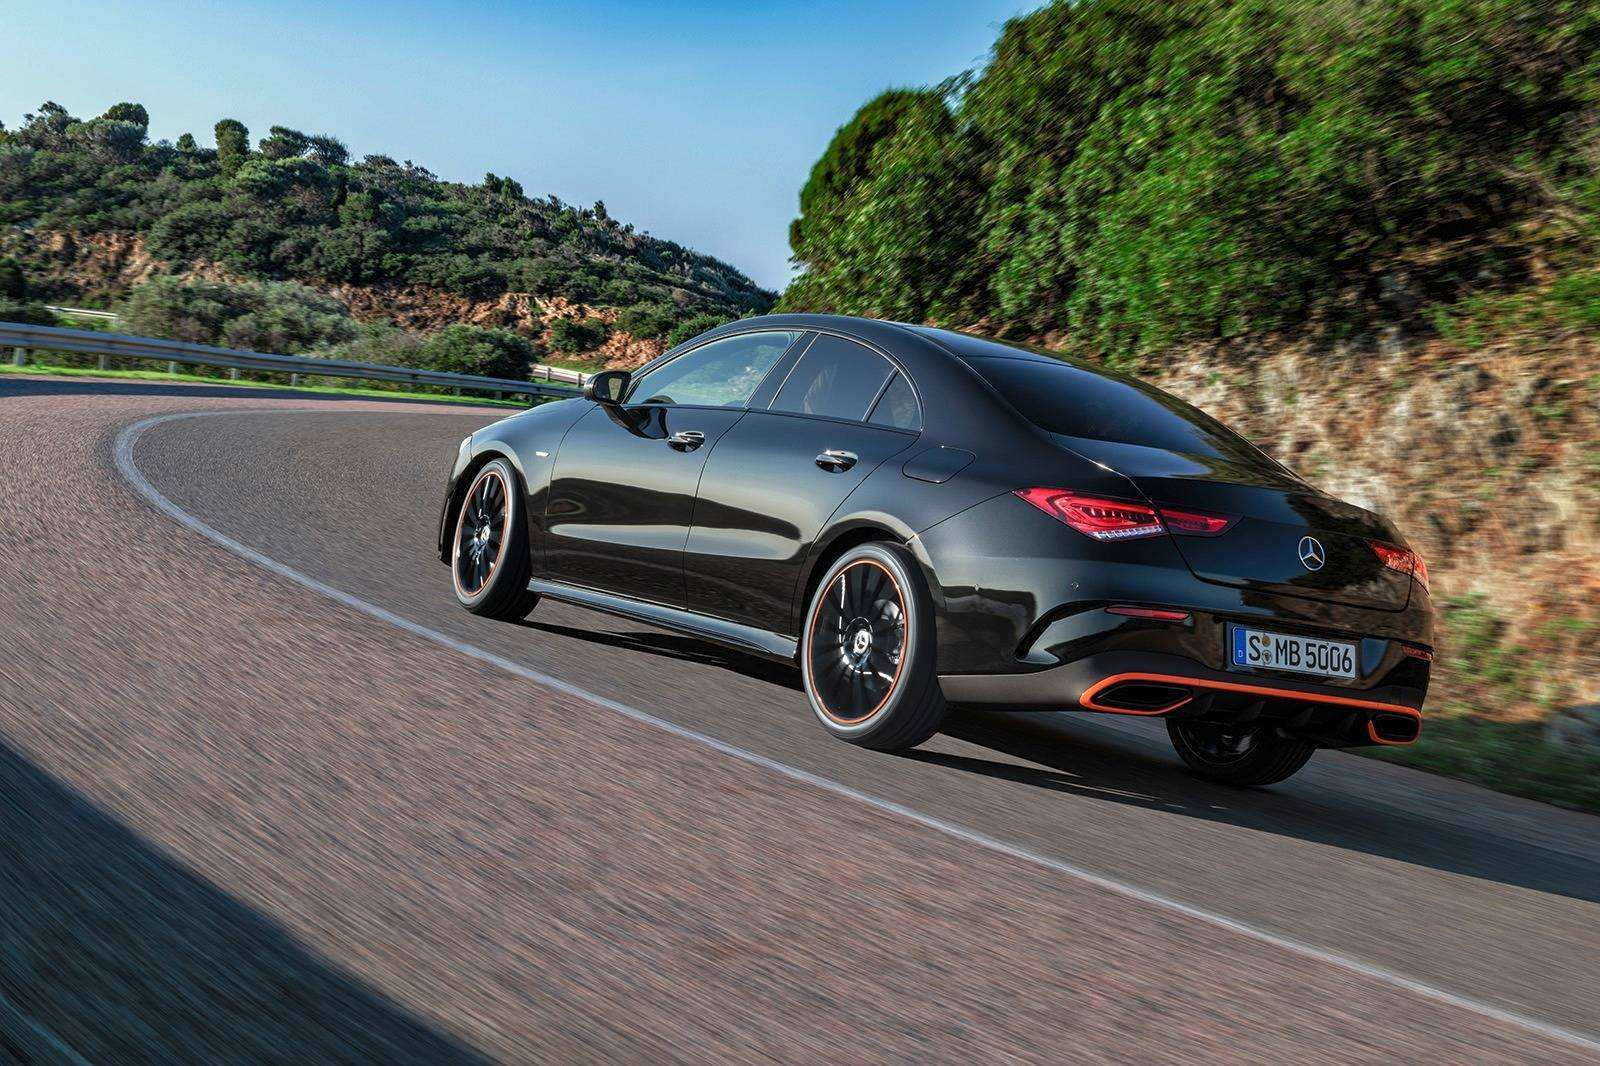 49 New Cla Mercedes 2020 Exterior and Interior with Cla Mercedes 2020